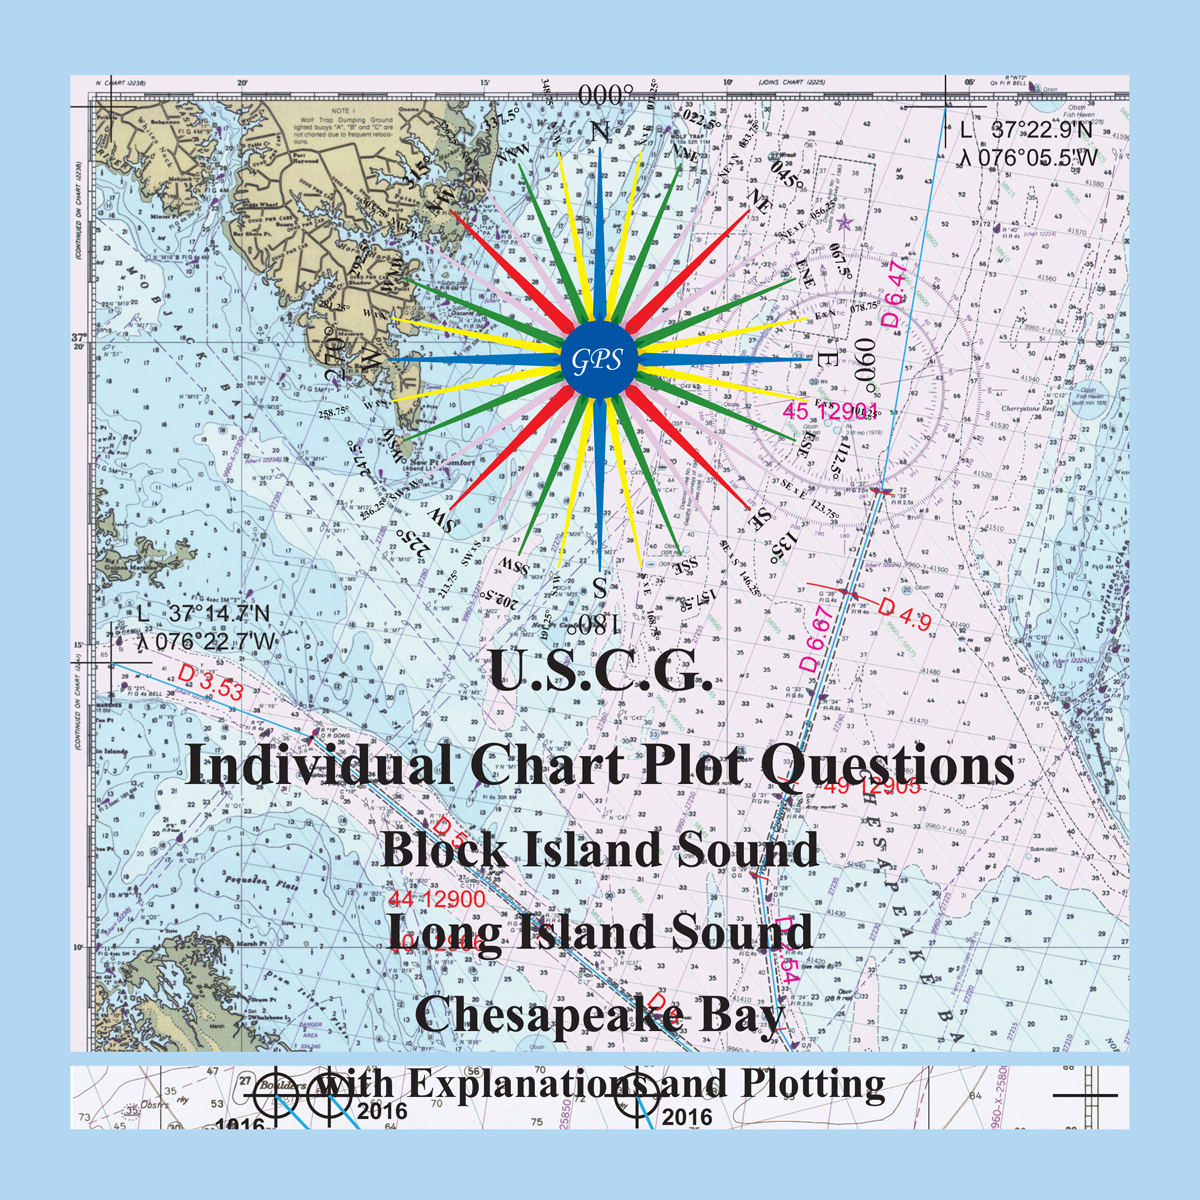 U.S.C.G. Individual Question Chart Plots Cover Laurie